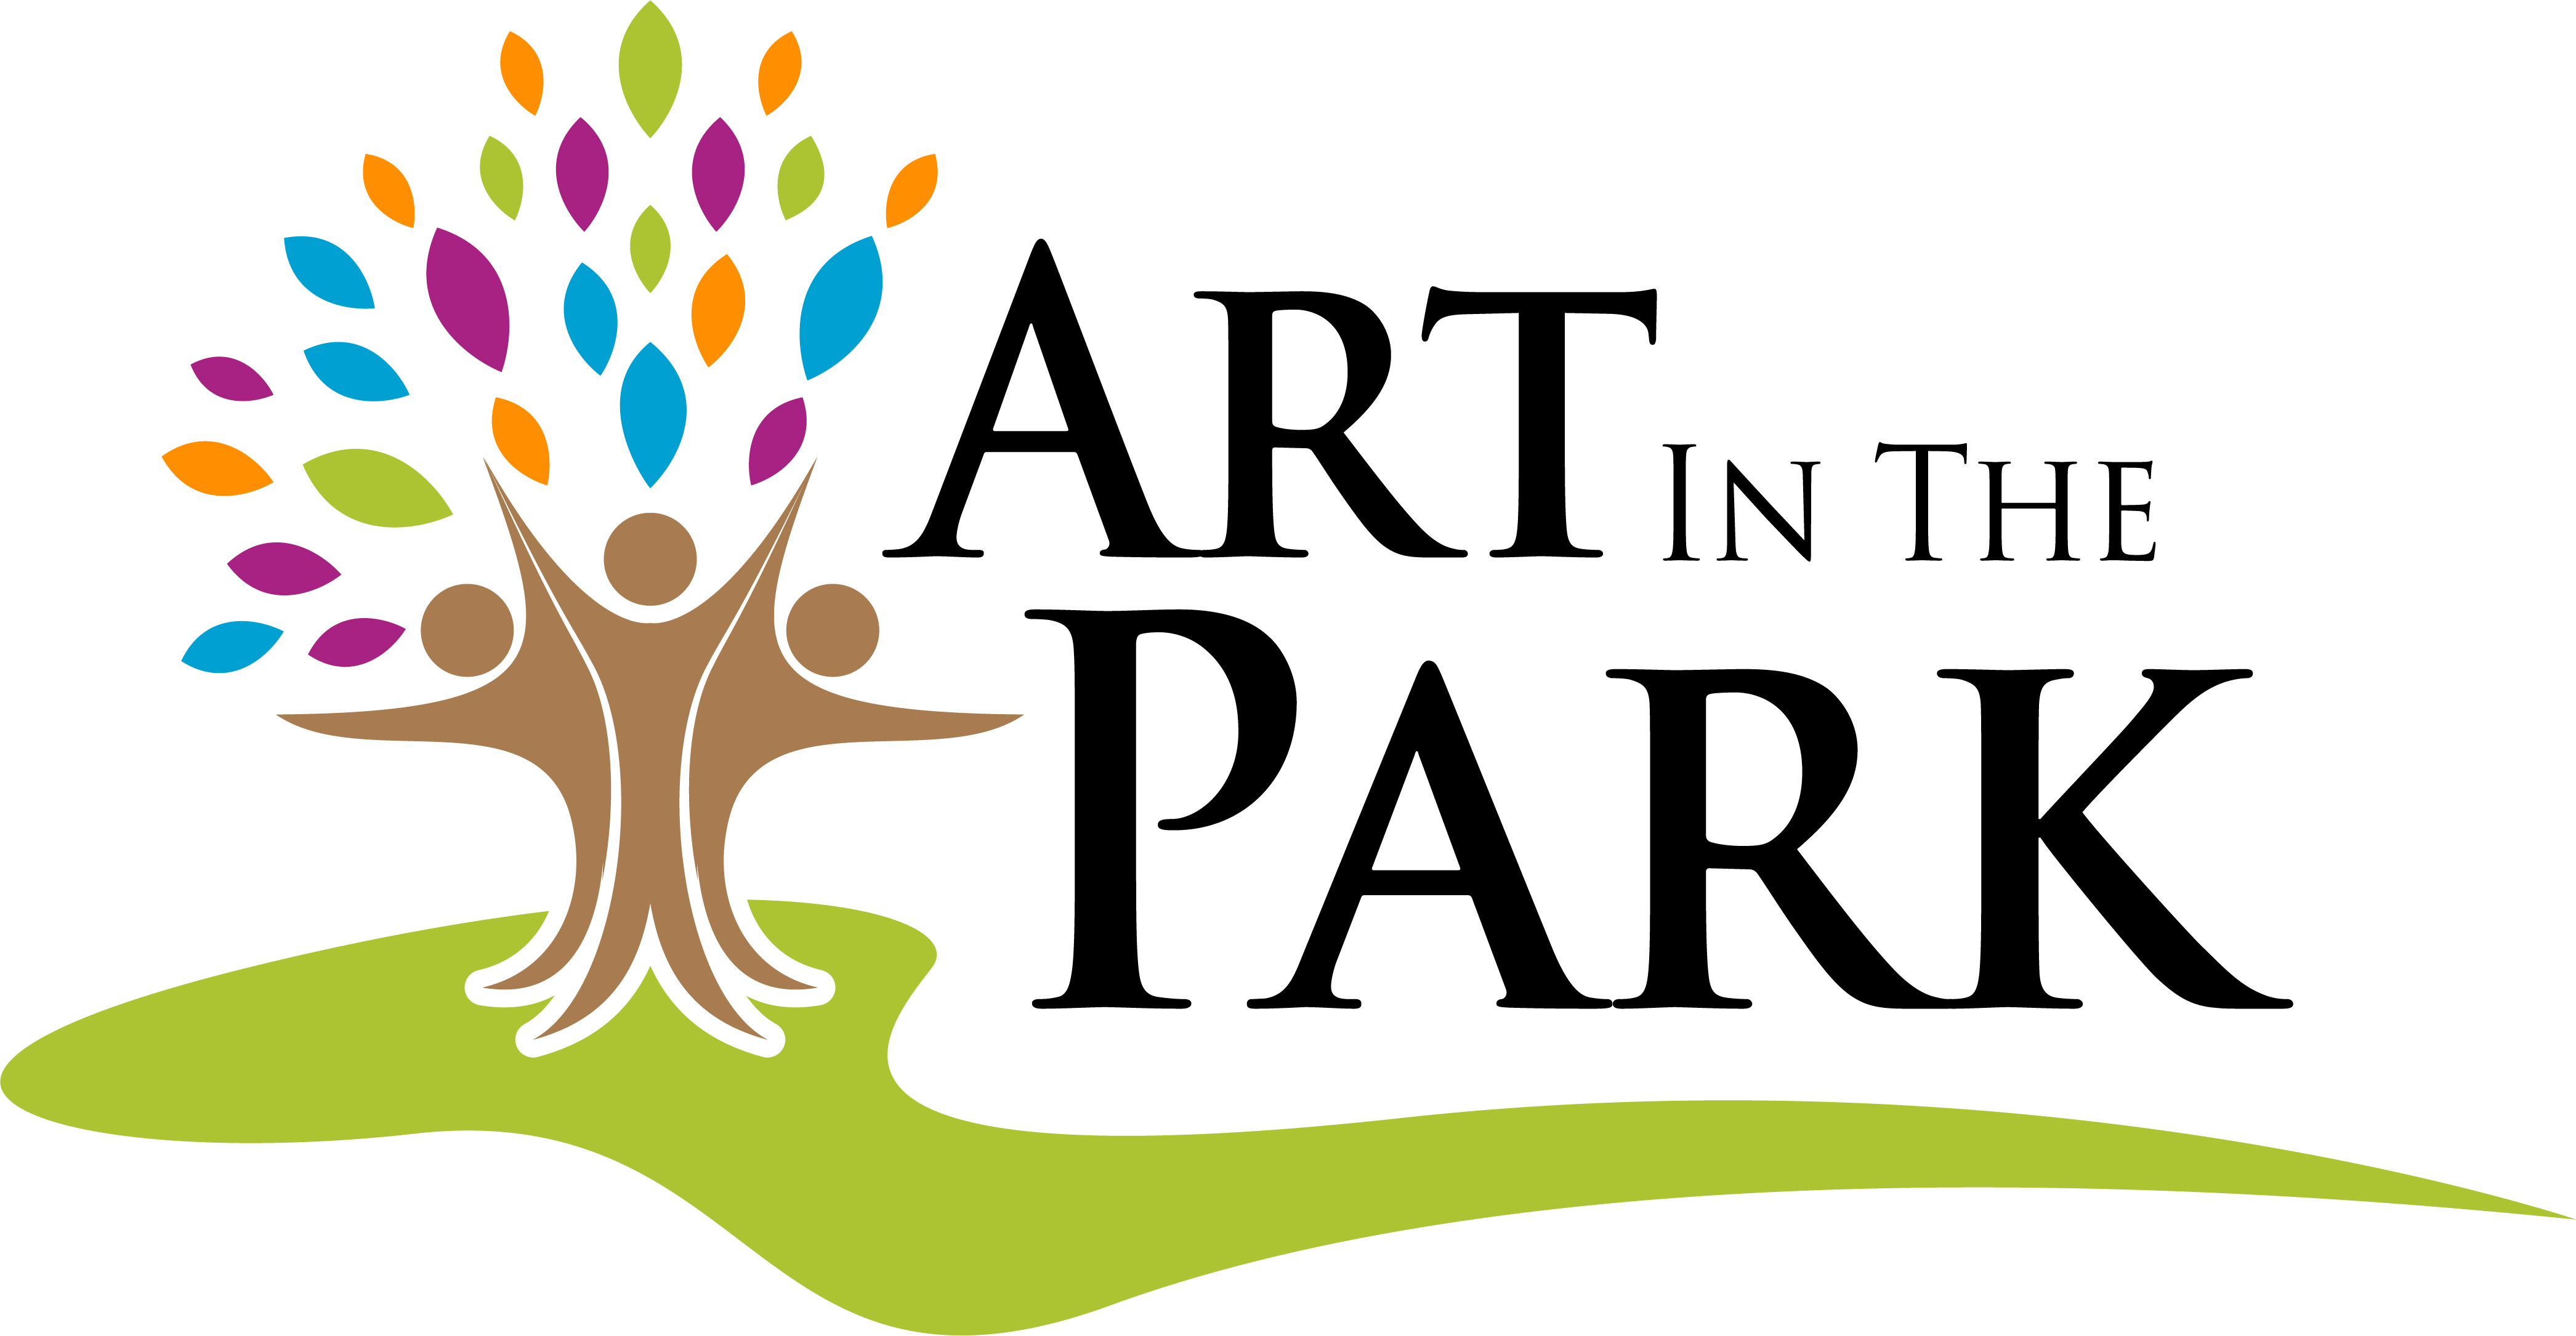 art in the park, New York, USA